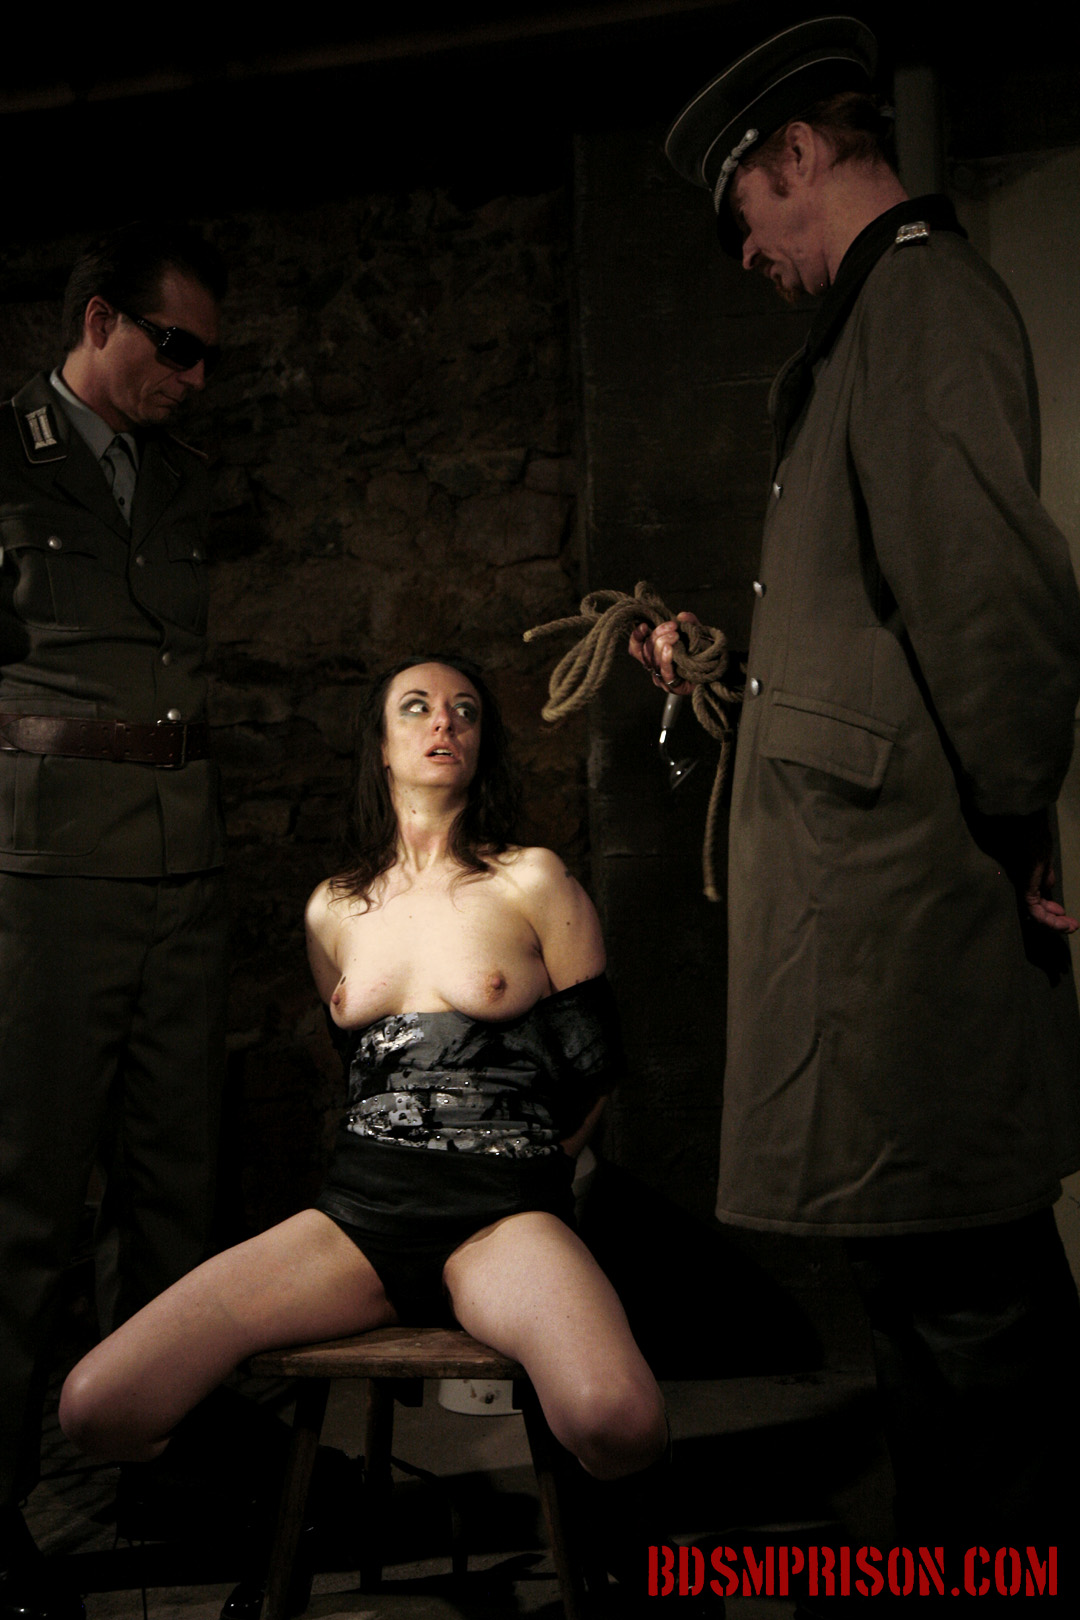 Nadja endures domination humiliation bondage with duct tape. Nadja has been in prison for a few years where she is punish daily by two prison guards. She has earned sex slave traininig. She wakes up bound to a chair with a sack over her head in the basement of our institute.